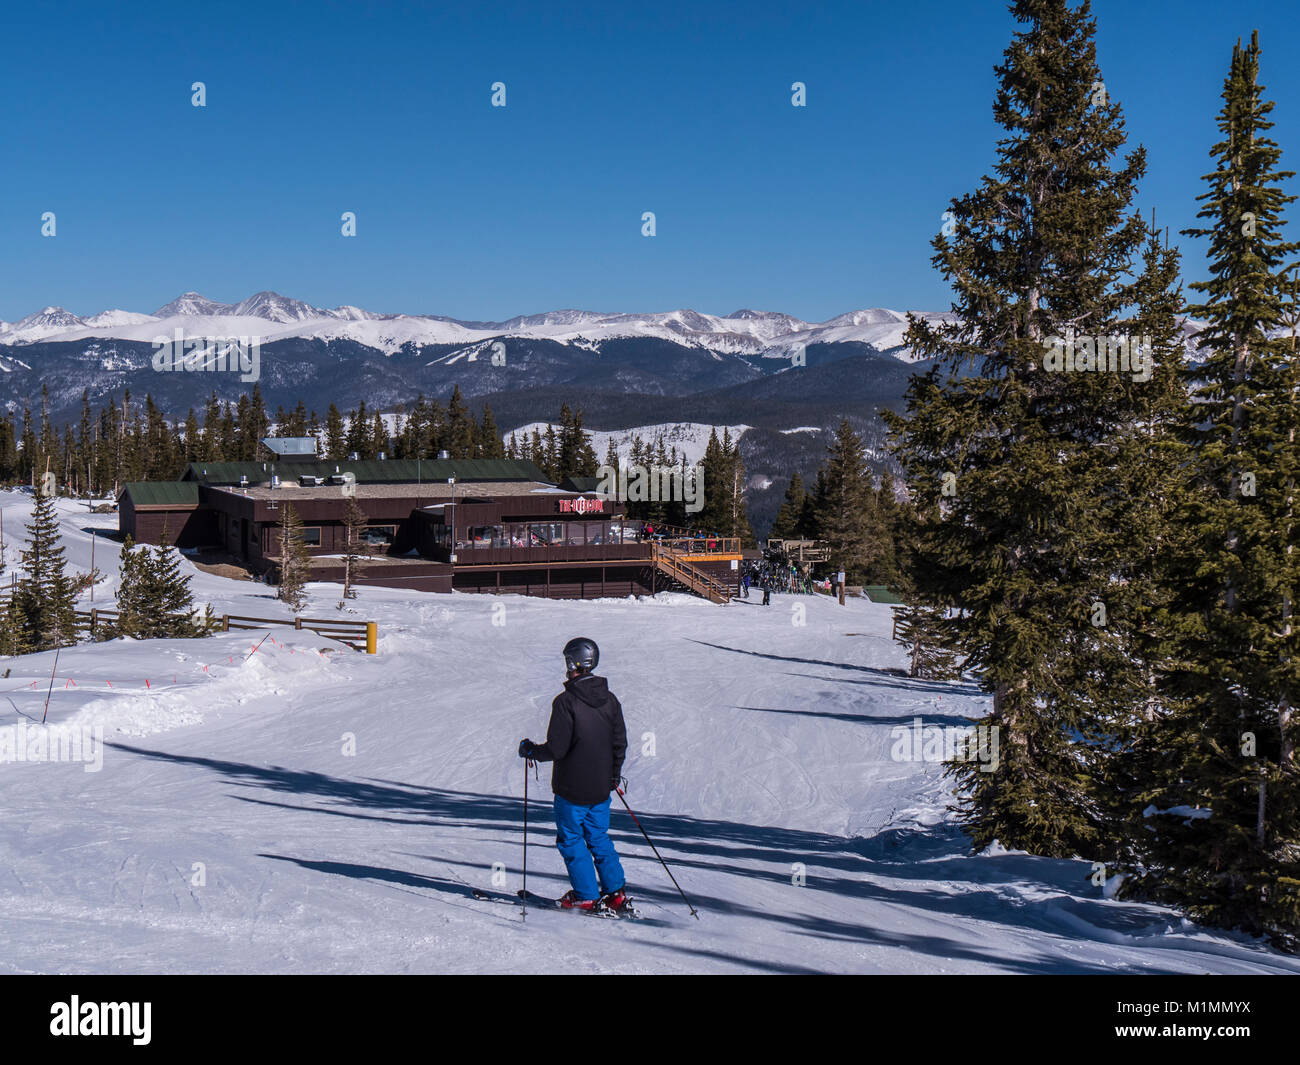 Donnent sur le jour lodge and restaurant au sommet Sommet 9, Station de Ski de Breckenridge, Breckenridge, Colorado. Photo Stock